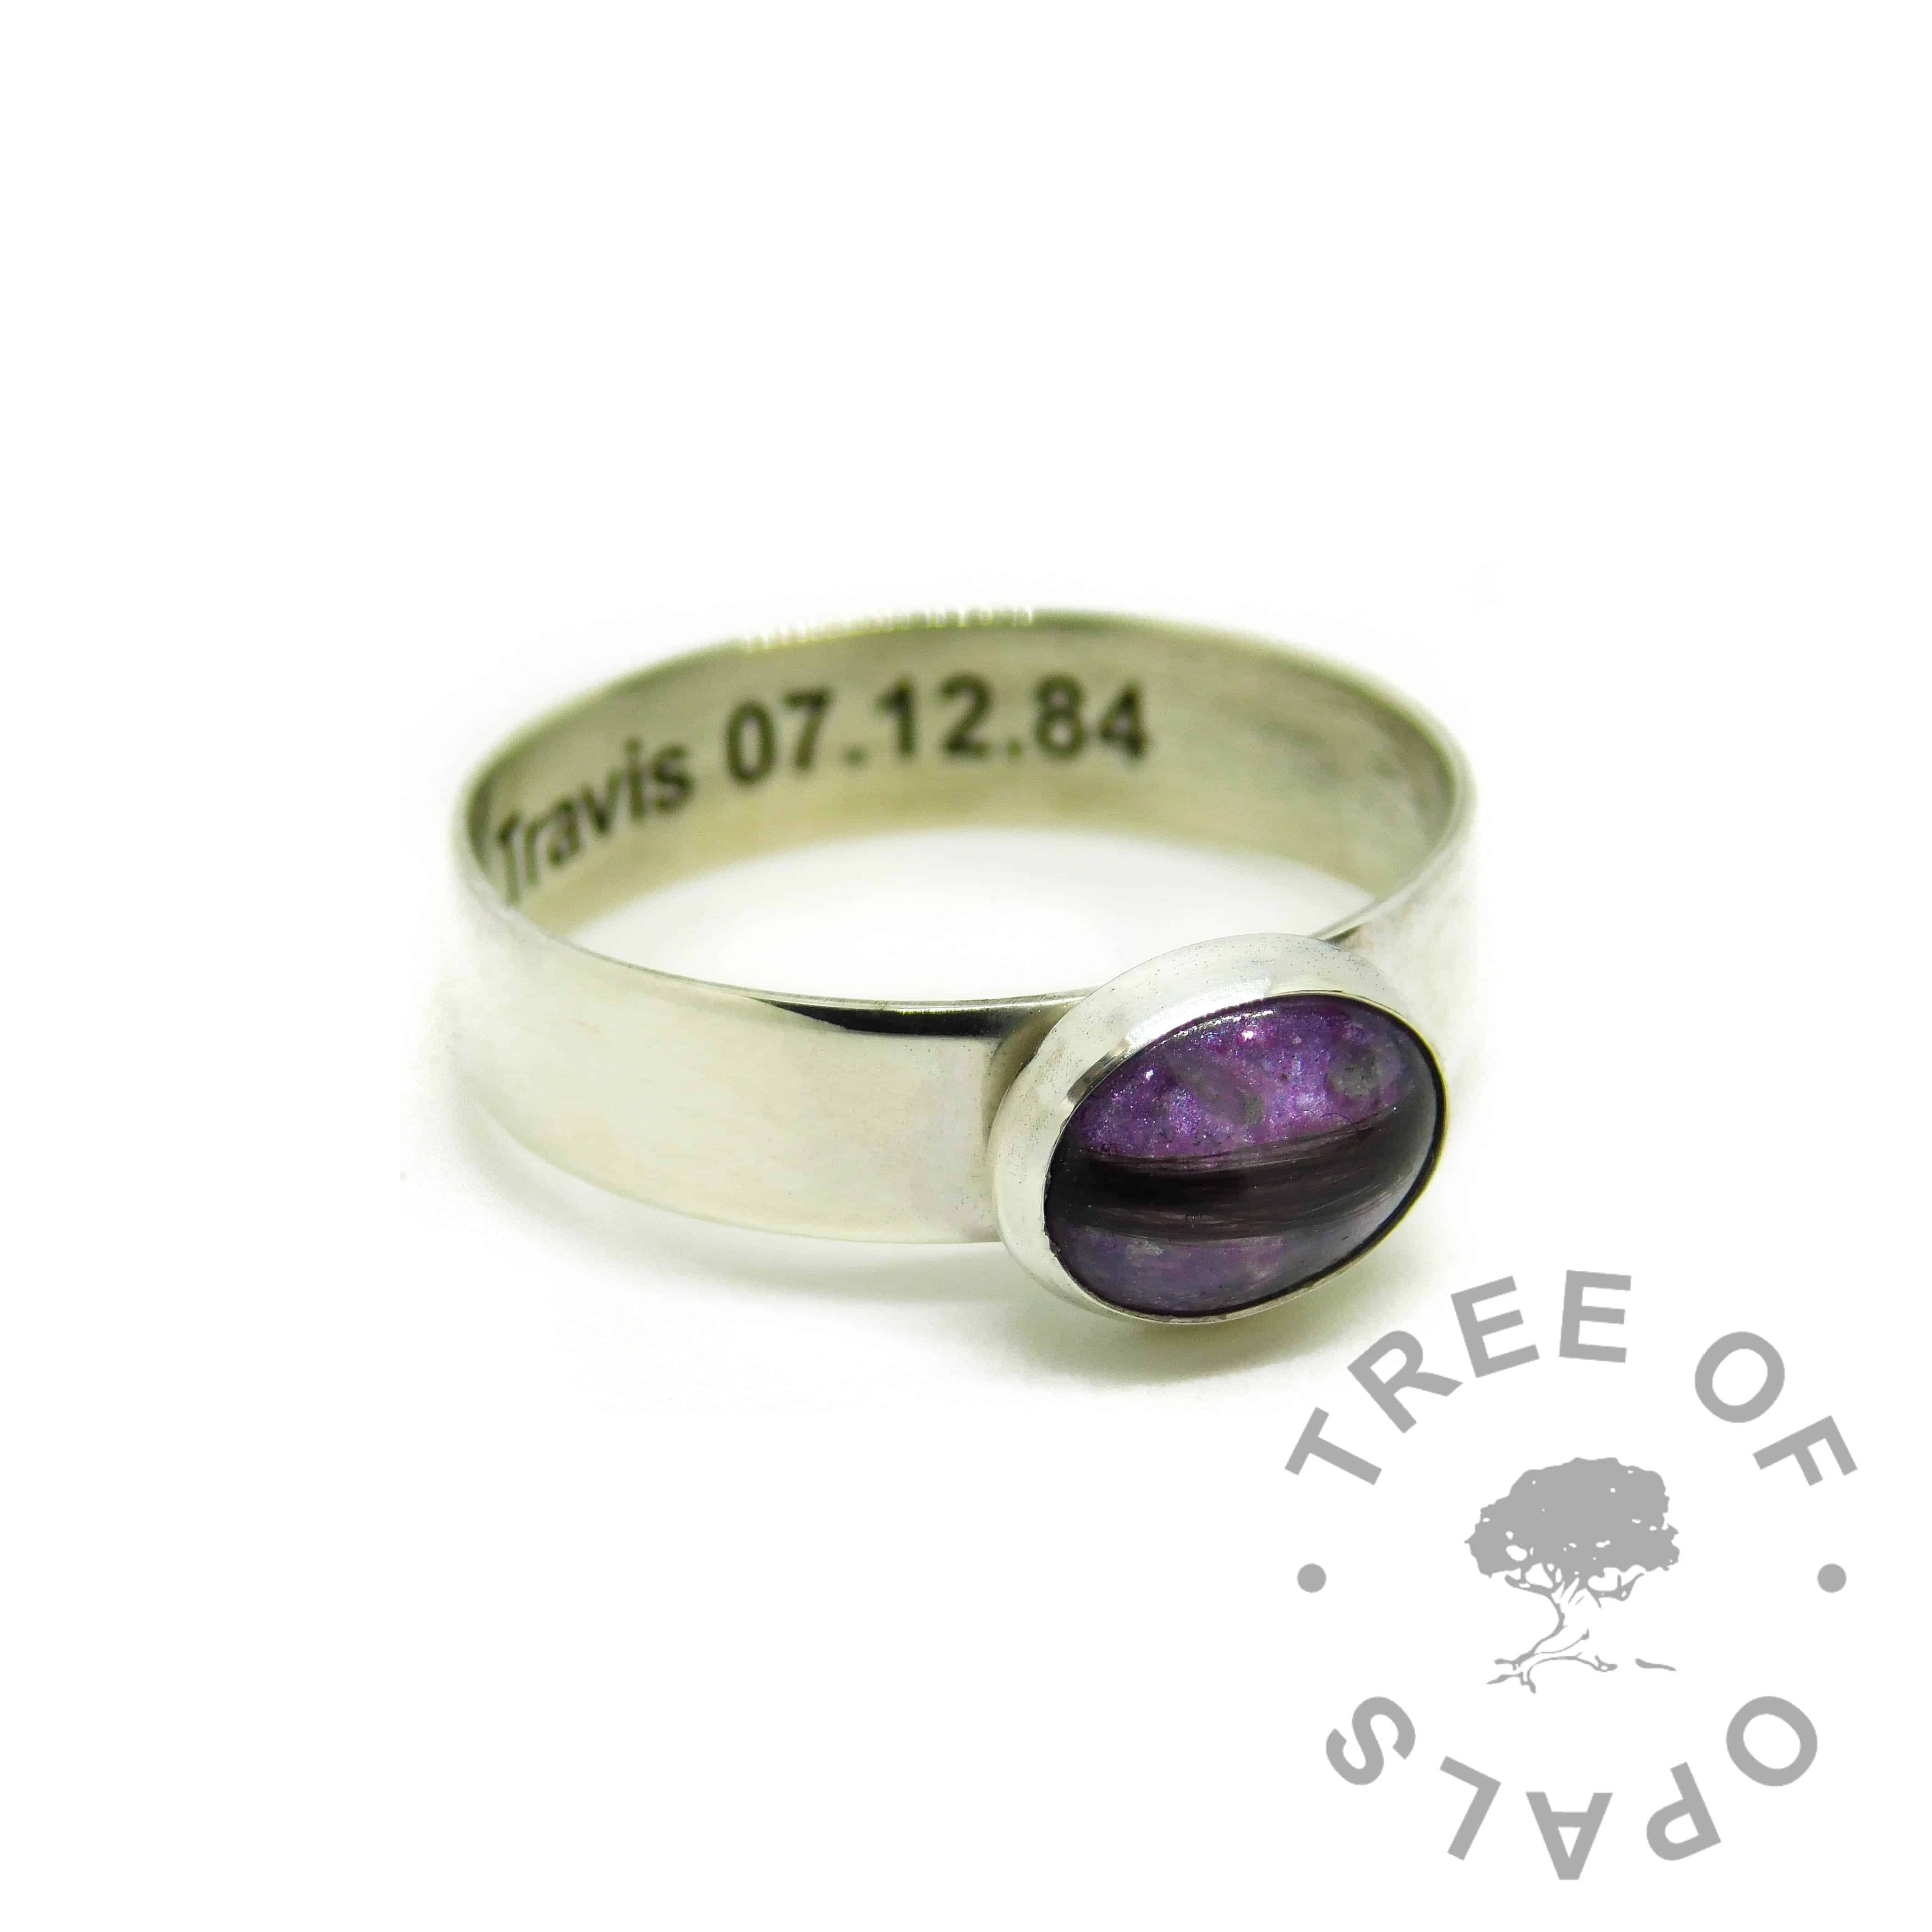 orchid purple resin sparkle mix and hair ring, 6mm shiny band engraved inside with arial font